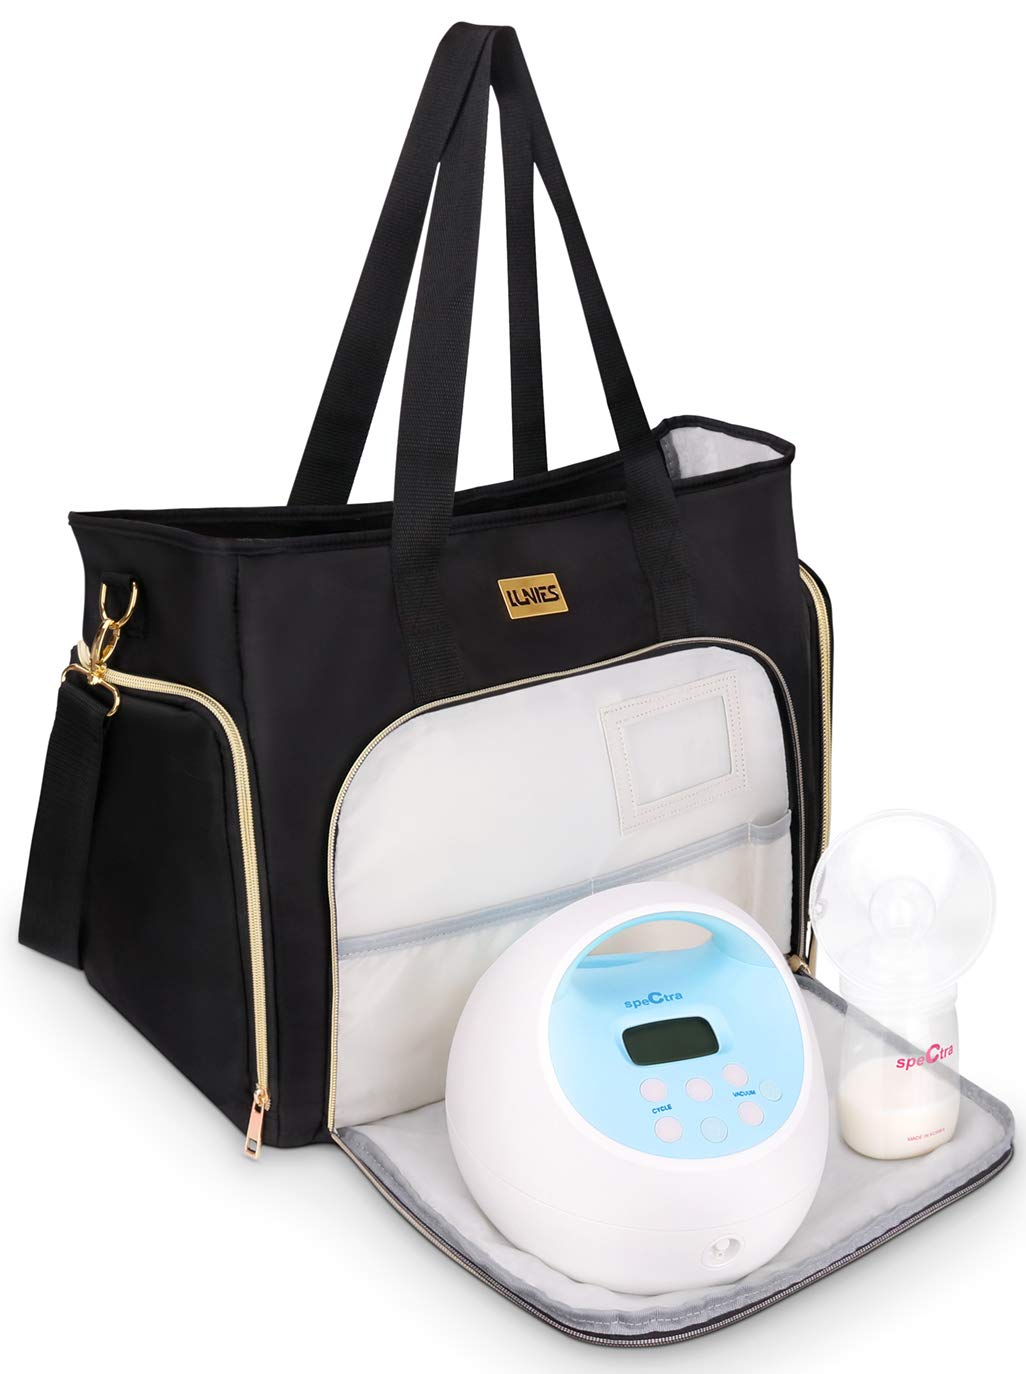 Amazon Com Breast Pump Bag Compatible For Spectra S1 S2 Madela Lansinoh Electric Breast Pump Large Capacity Wide Open For Mum Travel Or Storage Includes Padded Laptop Sleeve